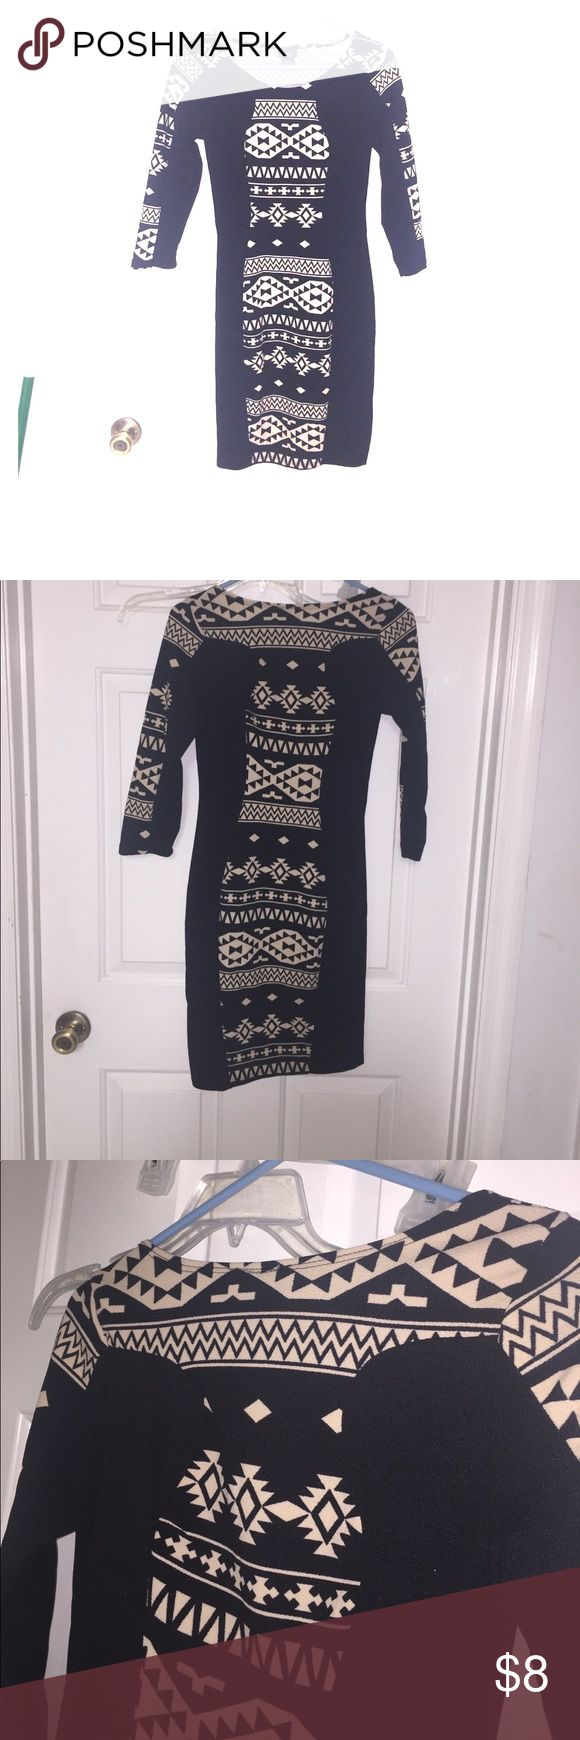 Rue21 XS Aztec Bodycon Dress Gently used rue21 dress. Size: X-Small. Very stretchy. Cute Black and Tan Aztec design. Length: 35. Armpit to armpit: 15. 3/4 Sleeve. Rue21 Dresses Midi